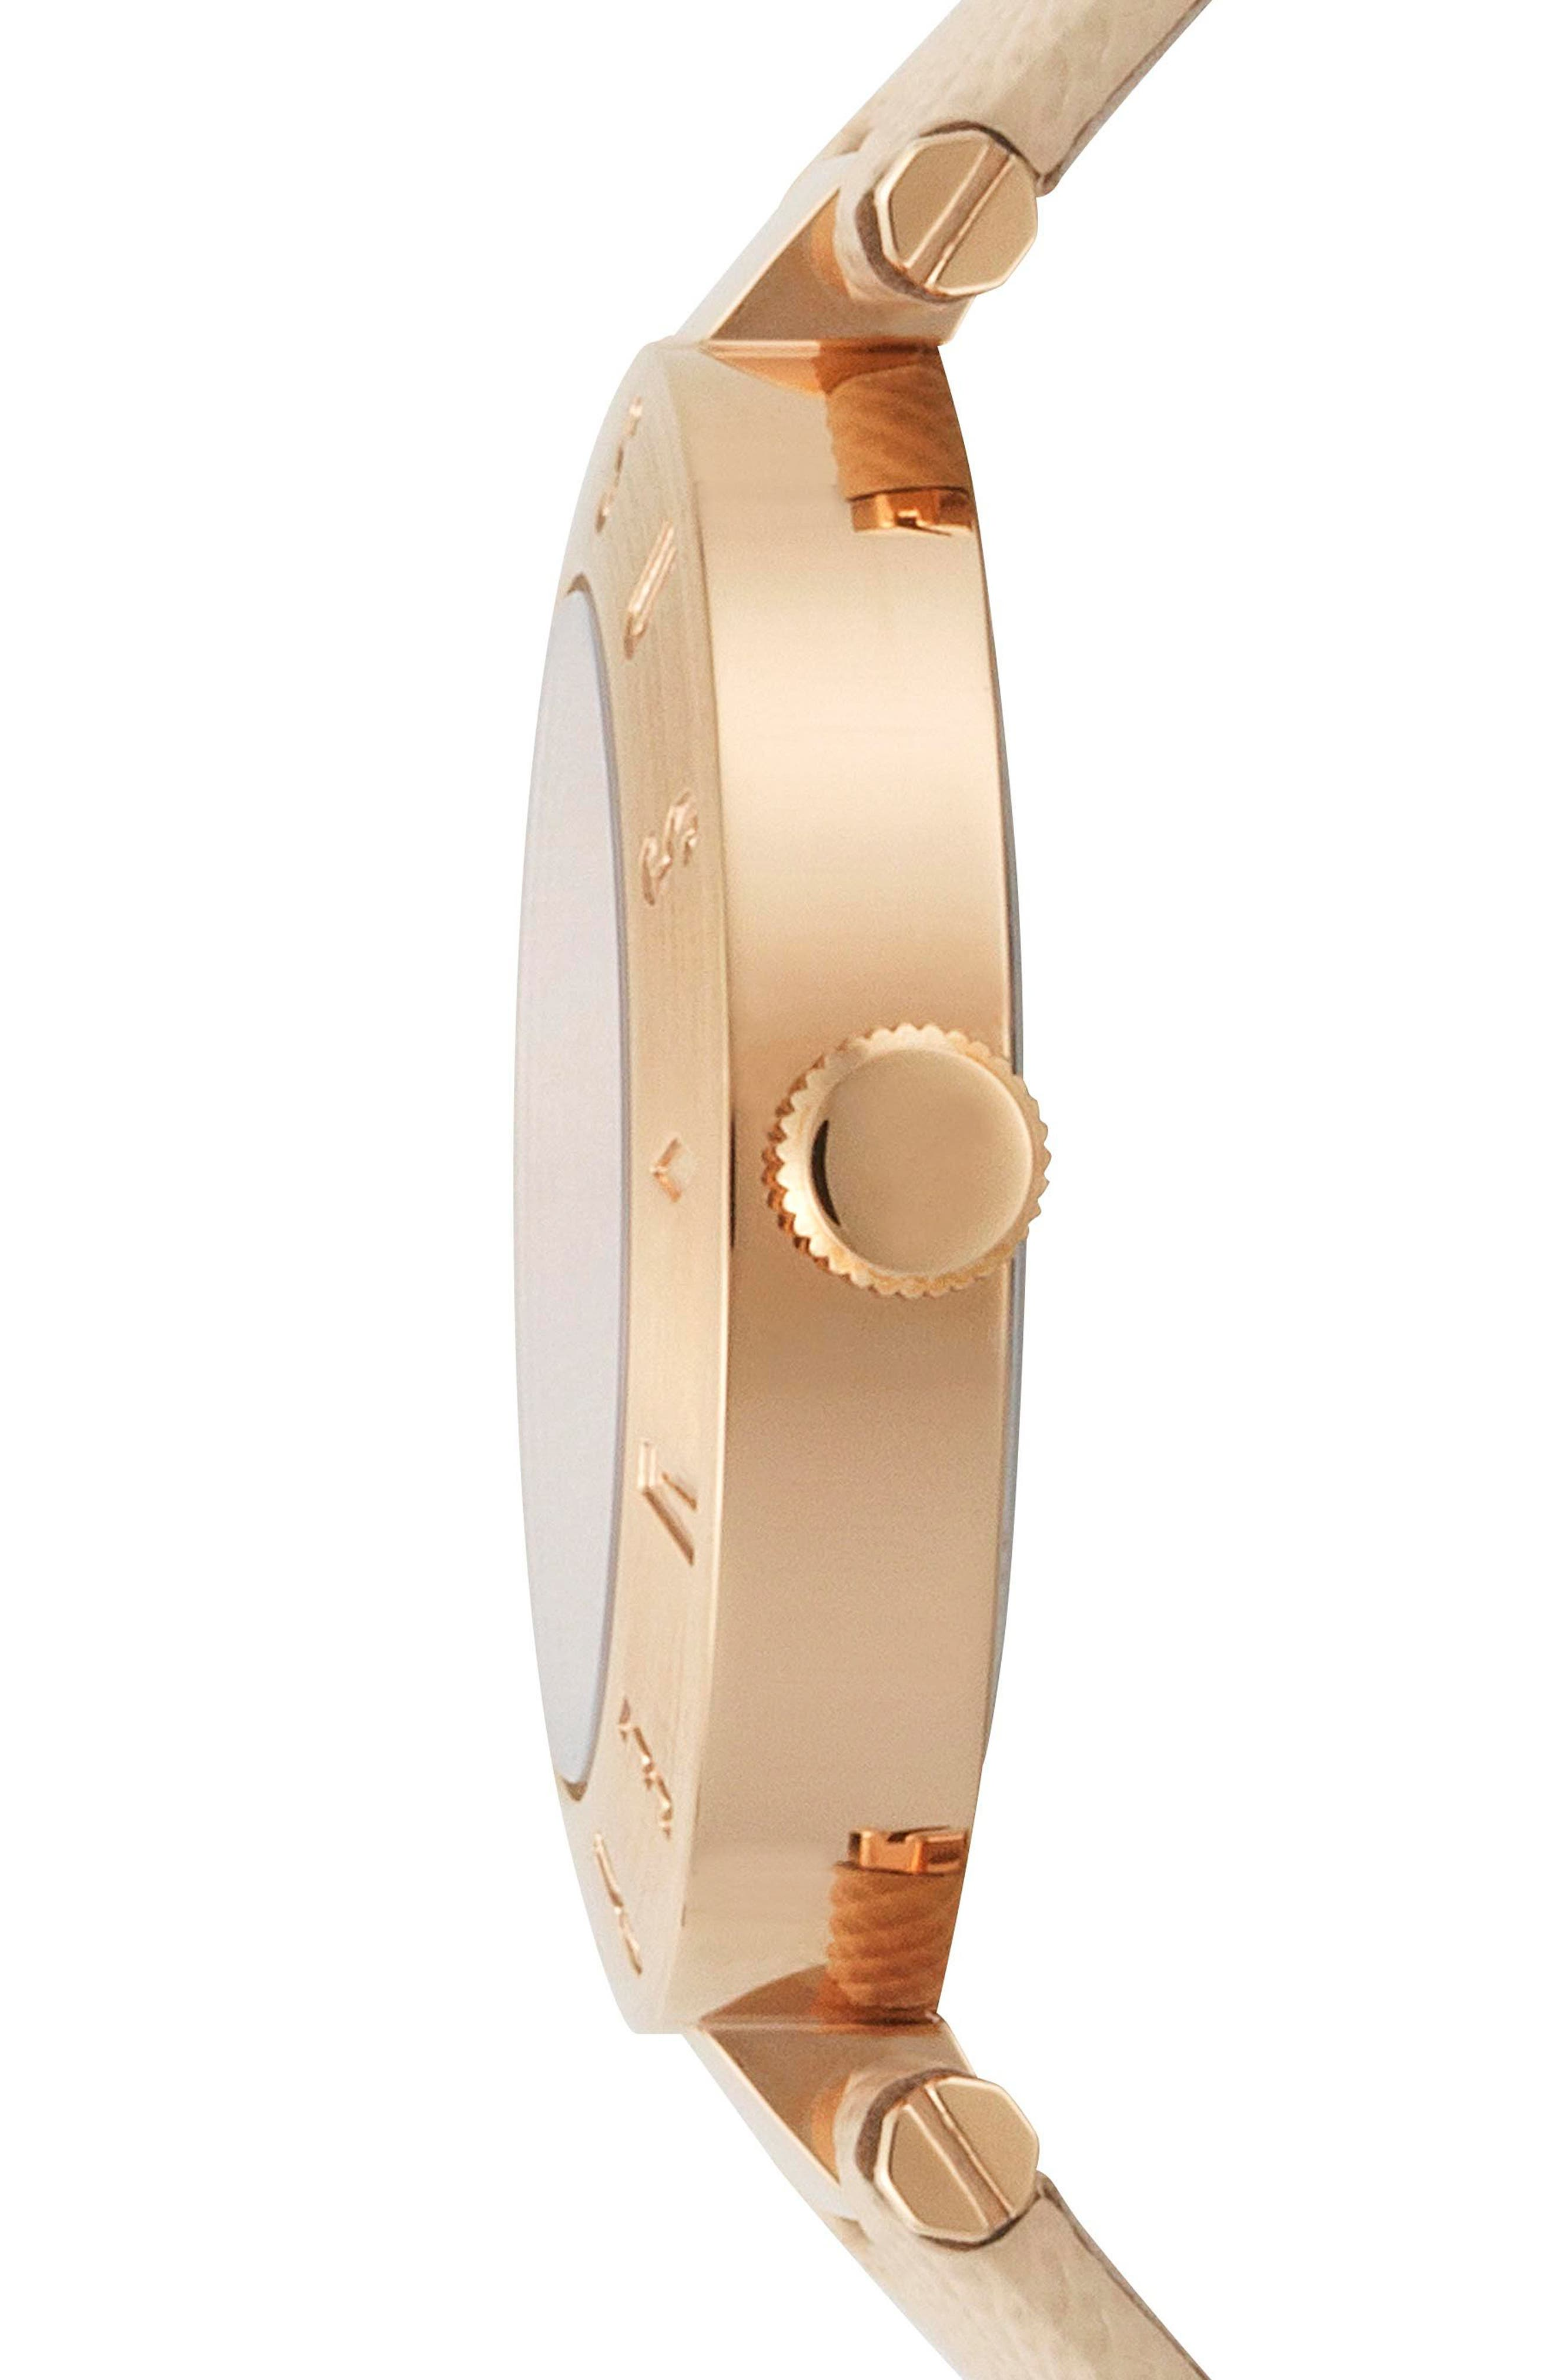 Versus by Versace New Logo Leather Strap Watch, 34mm,                             Alternate thumbnail 2, color,                             Beige/ Rose Gold